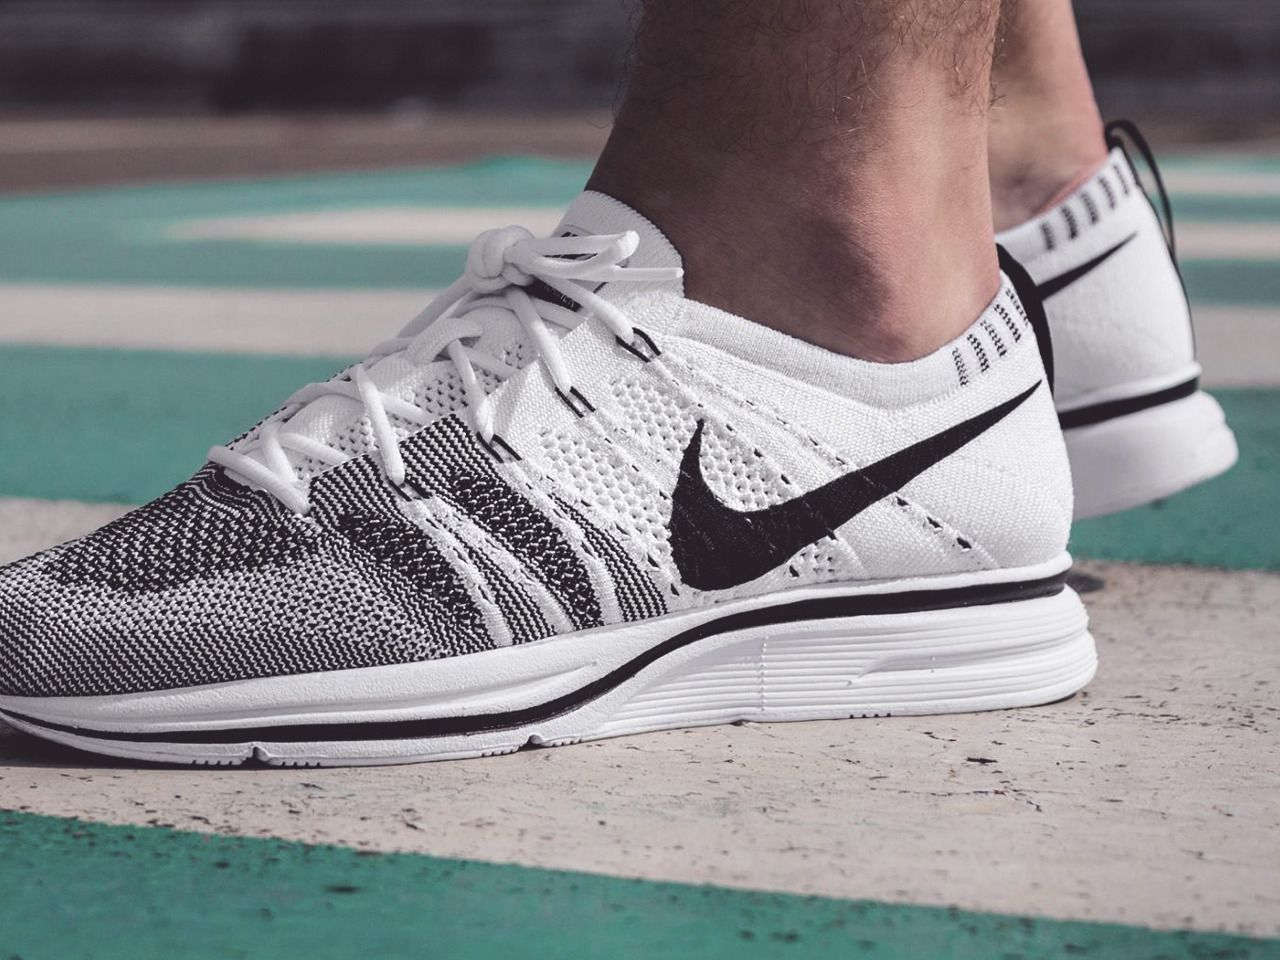 Nike Flyknit Trainer - White/Black - 2017 (by aymonnb)